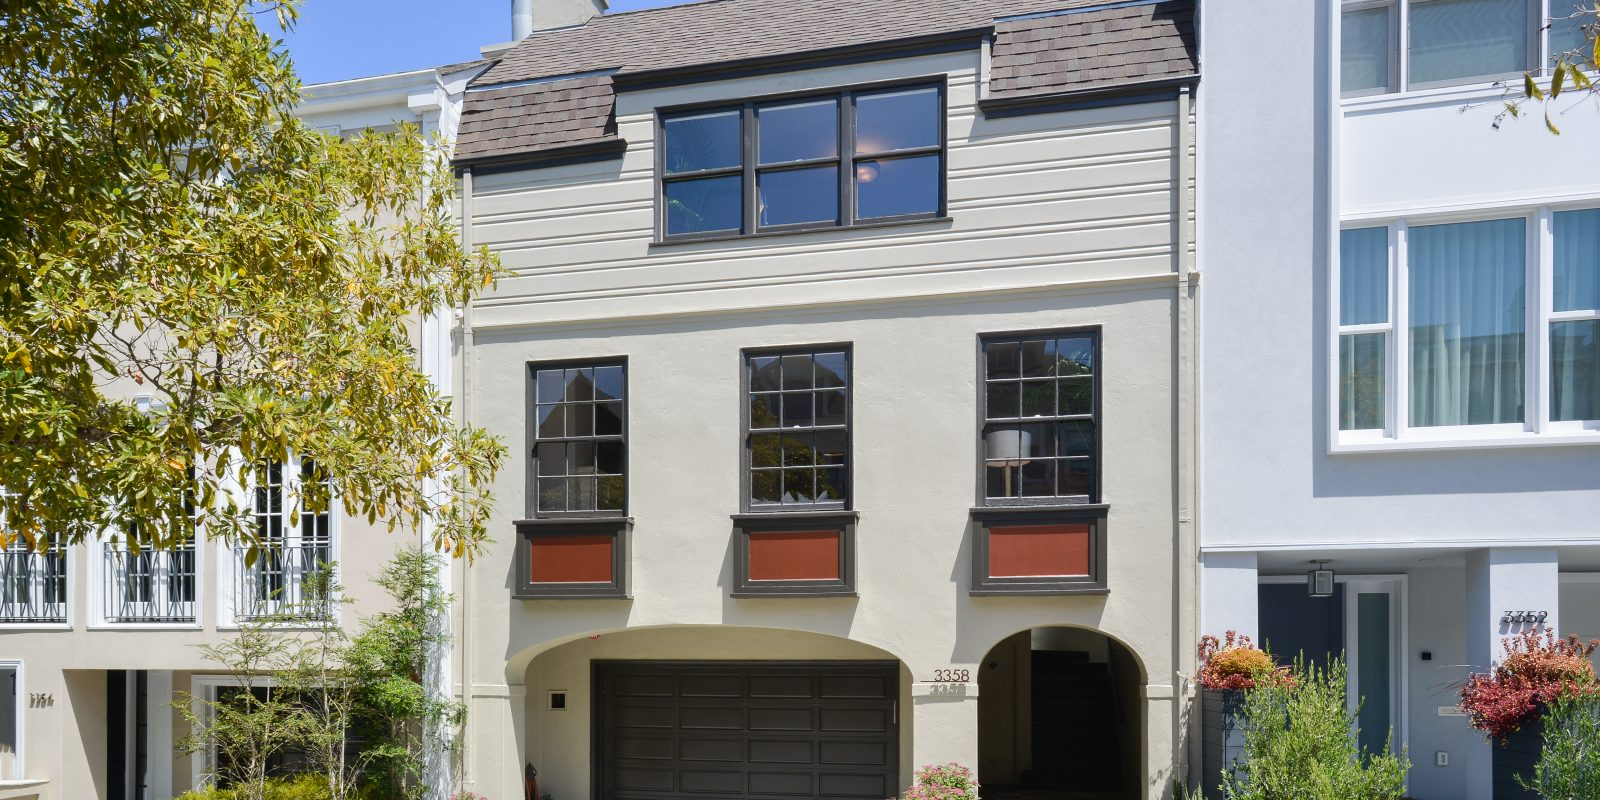 3358-washington-street-presidio-heights-san-francisco-home-for-sale-177269